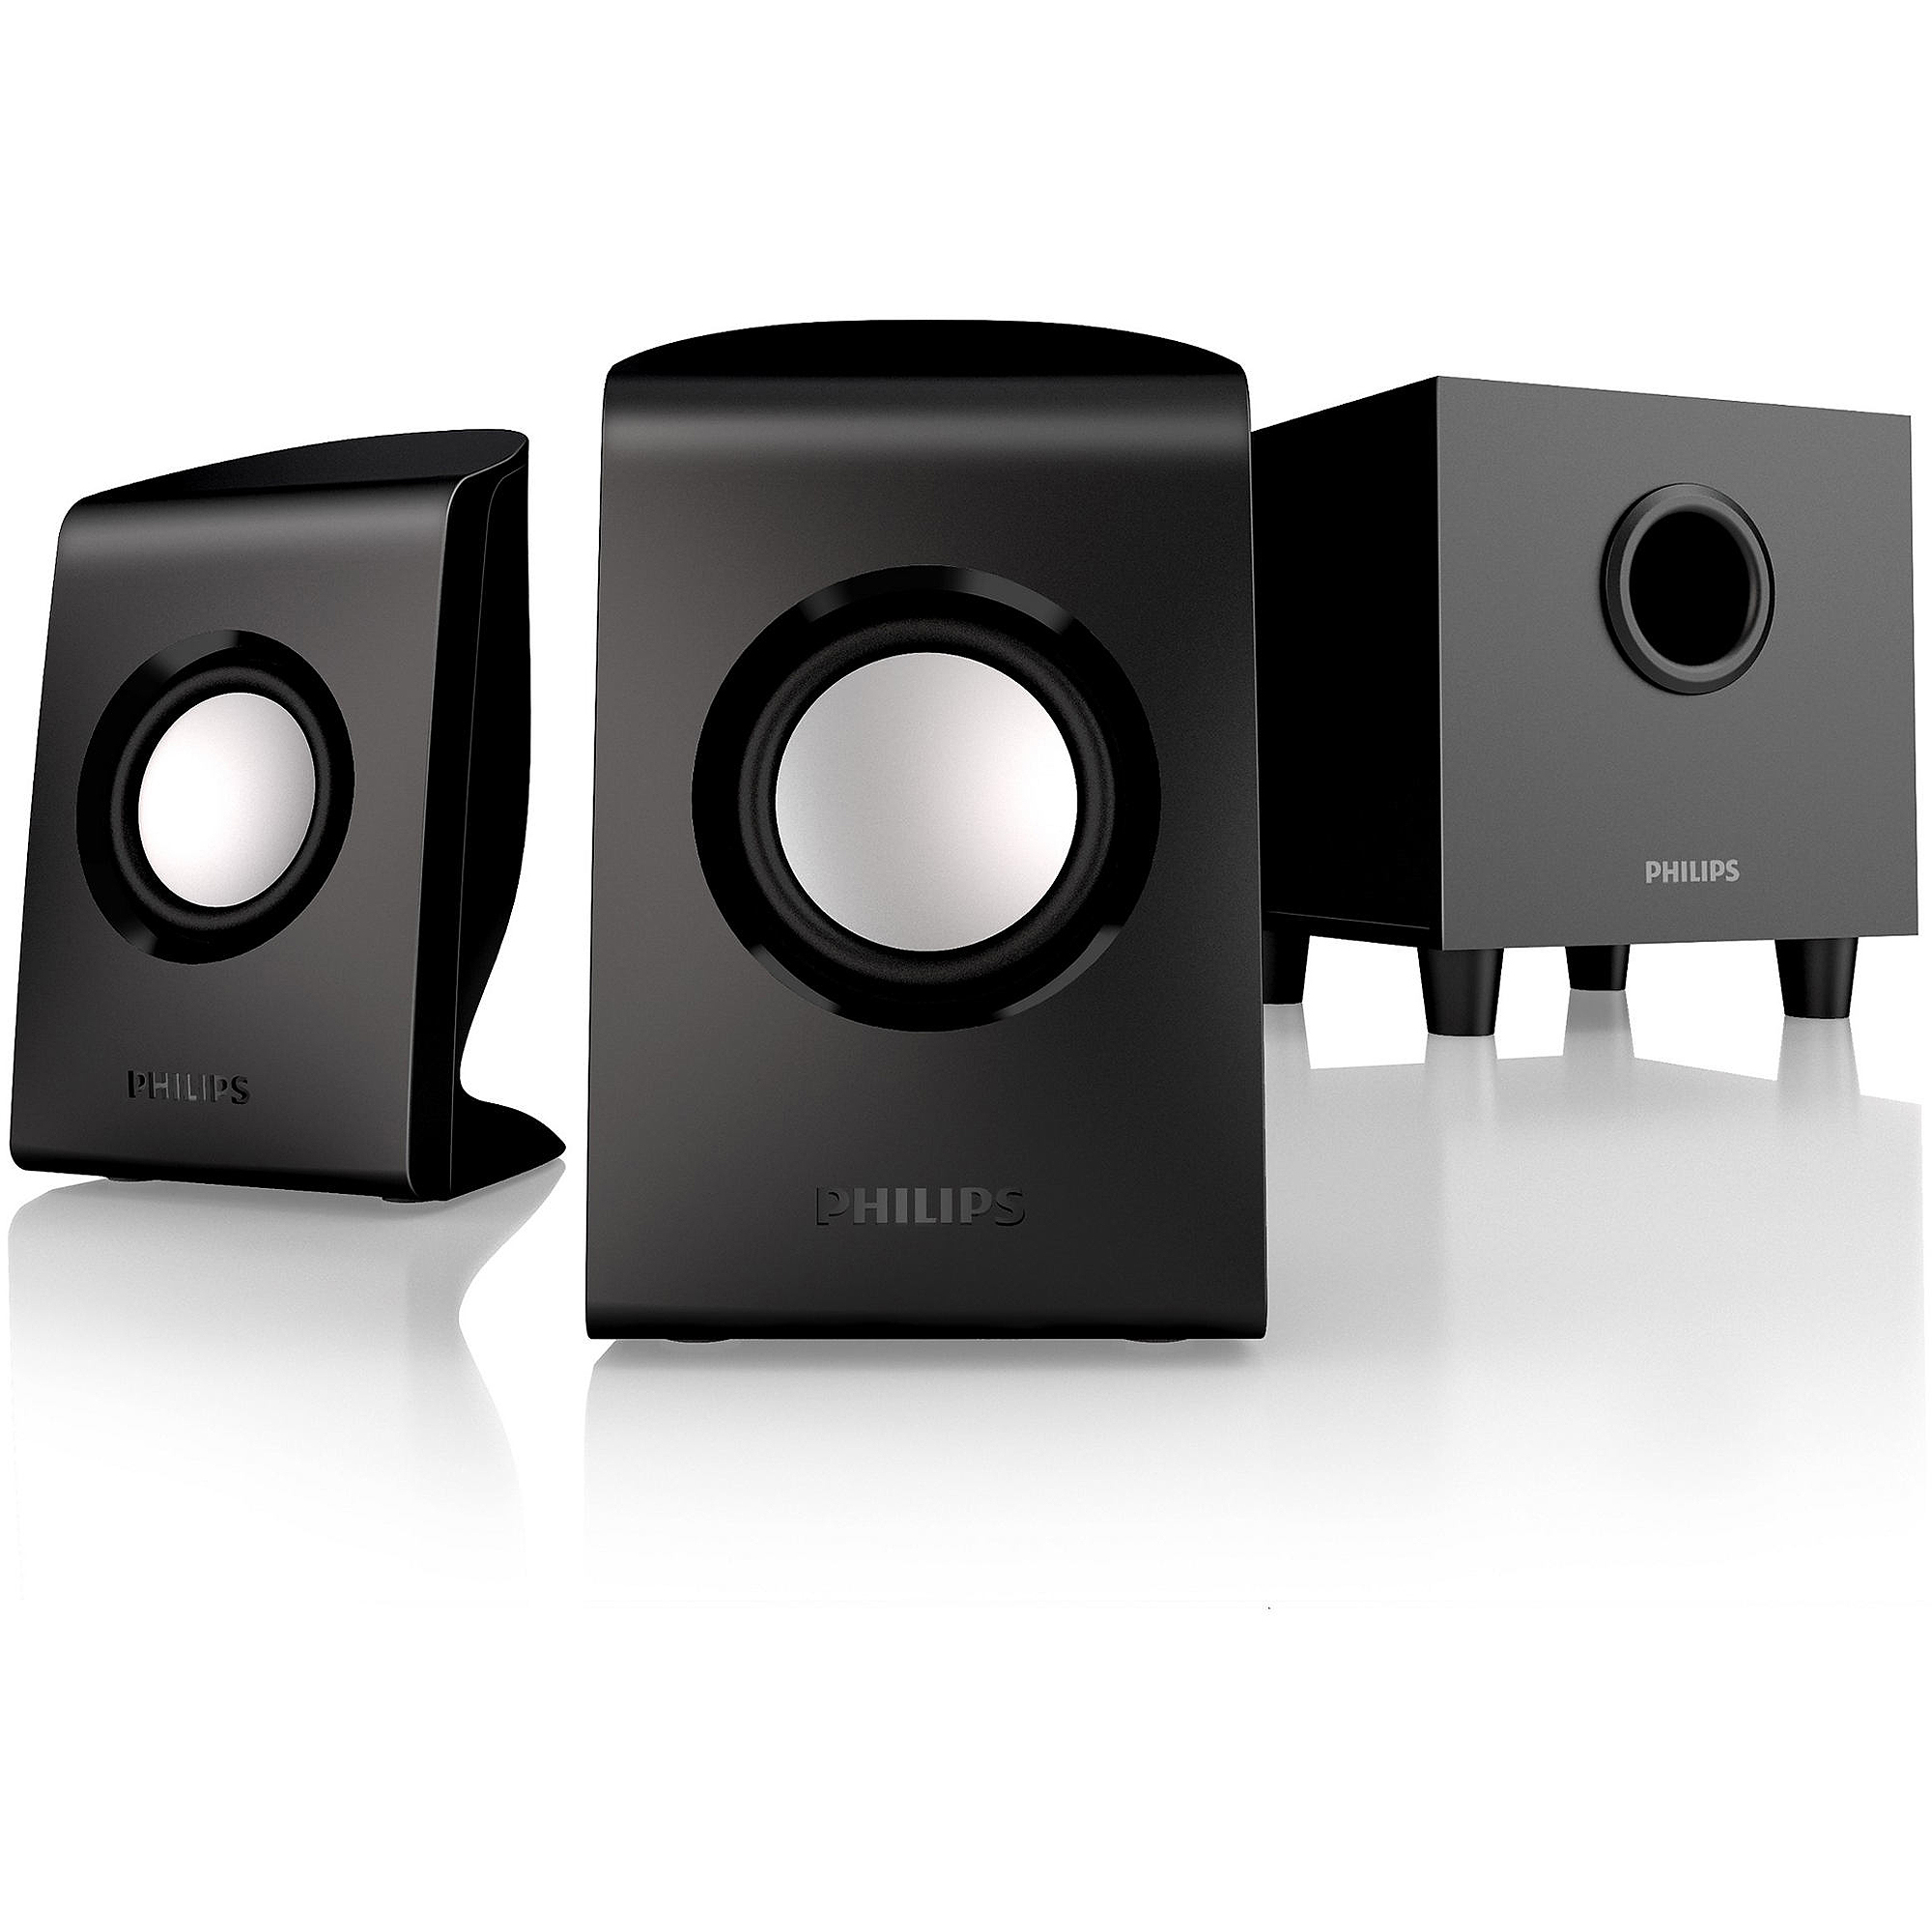 Philips 2.1 Multimedia Speakers, SPA1330/37